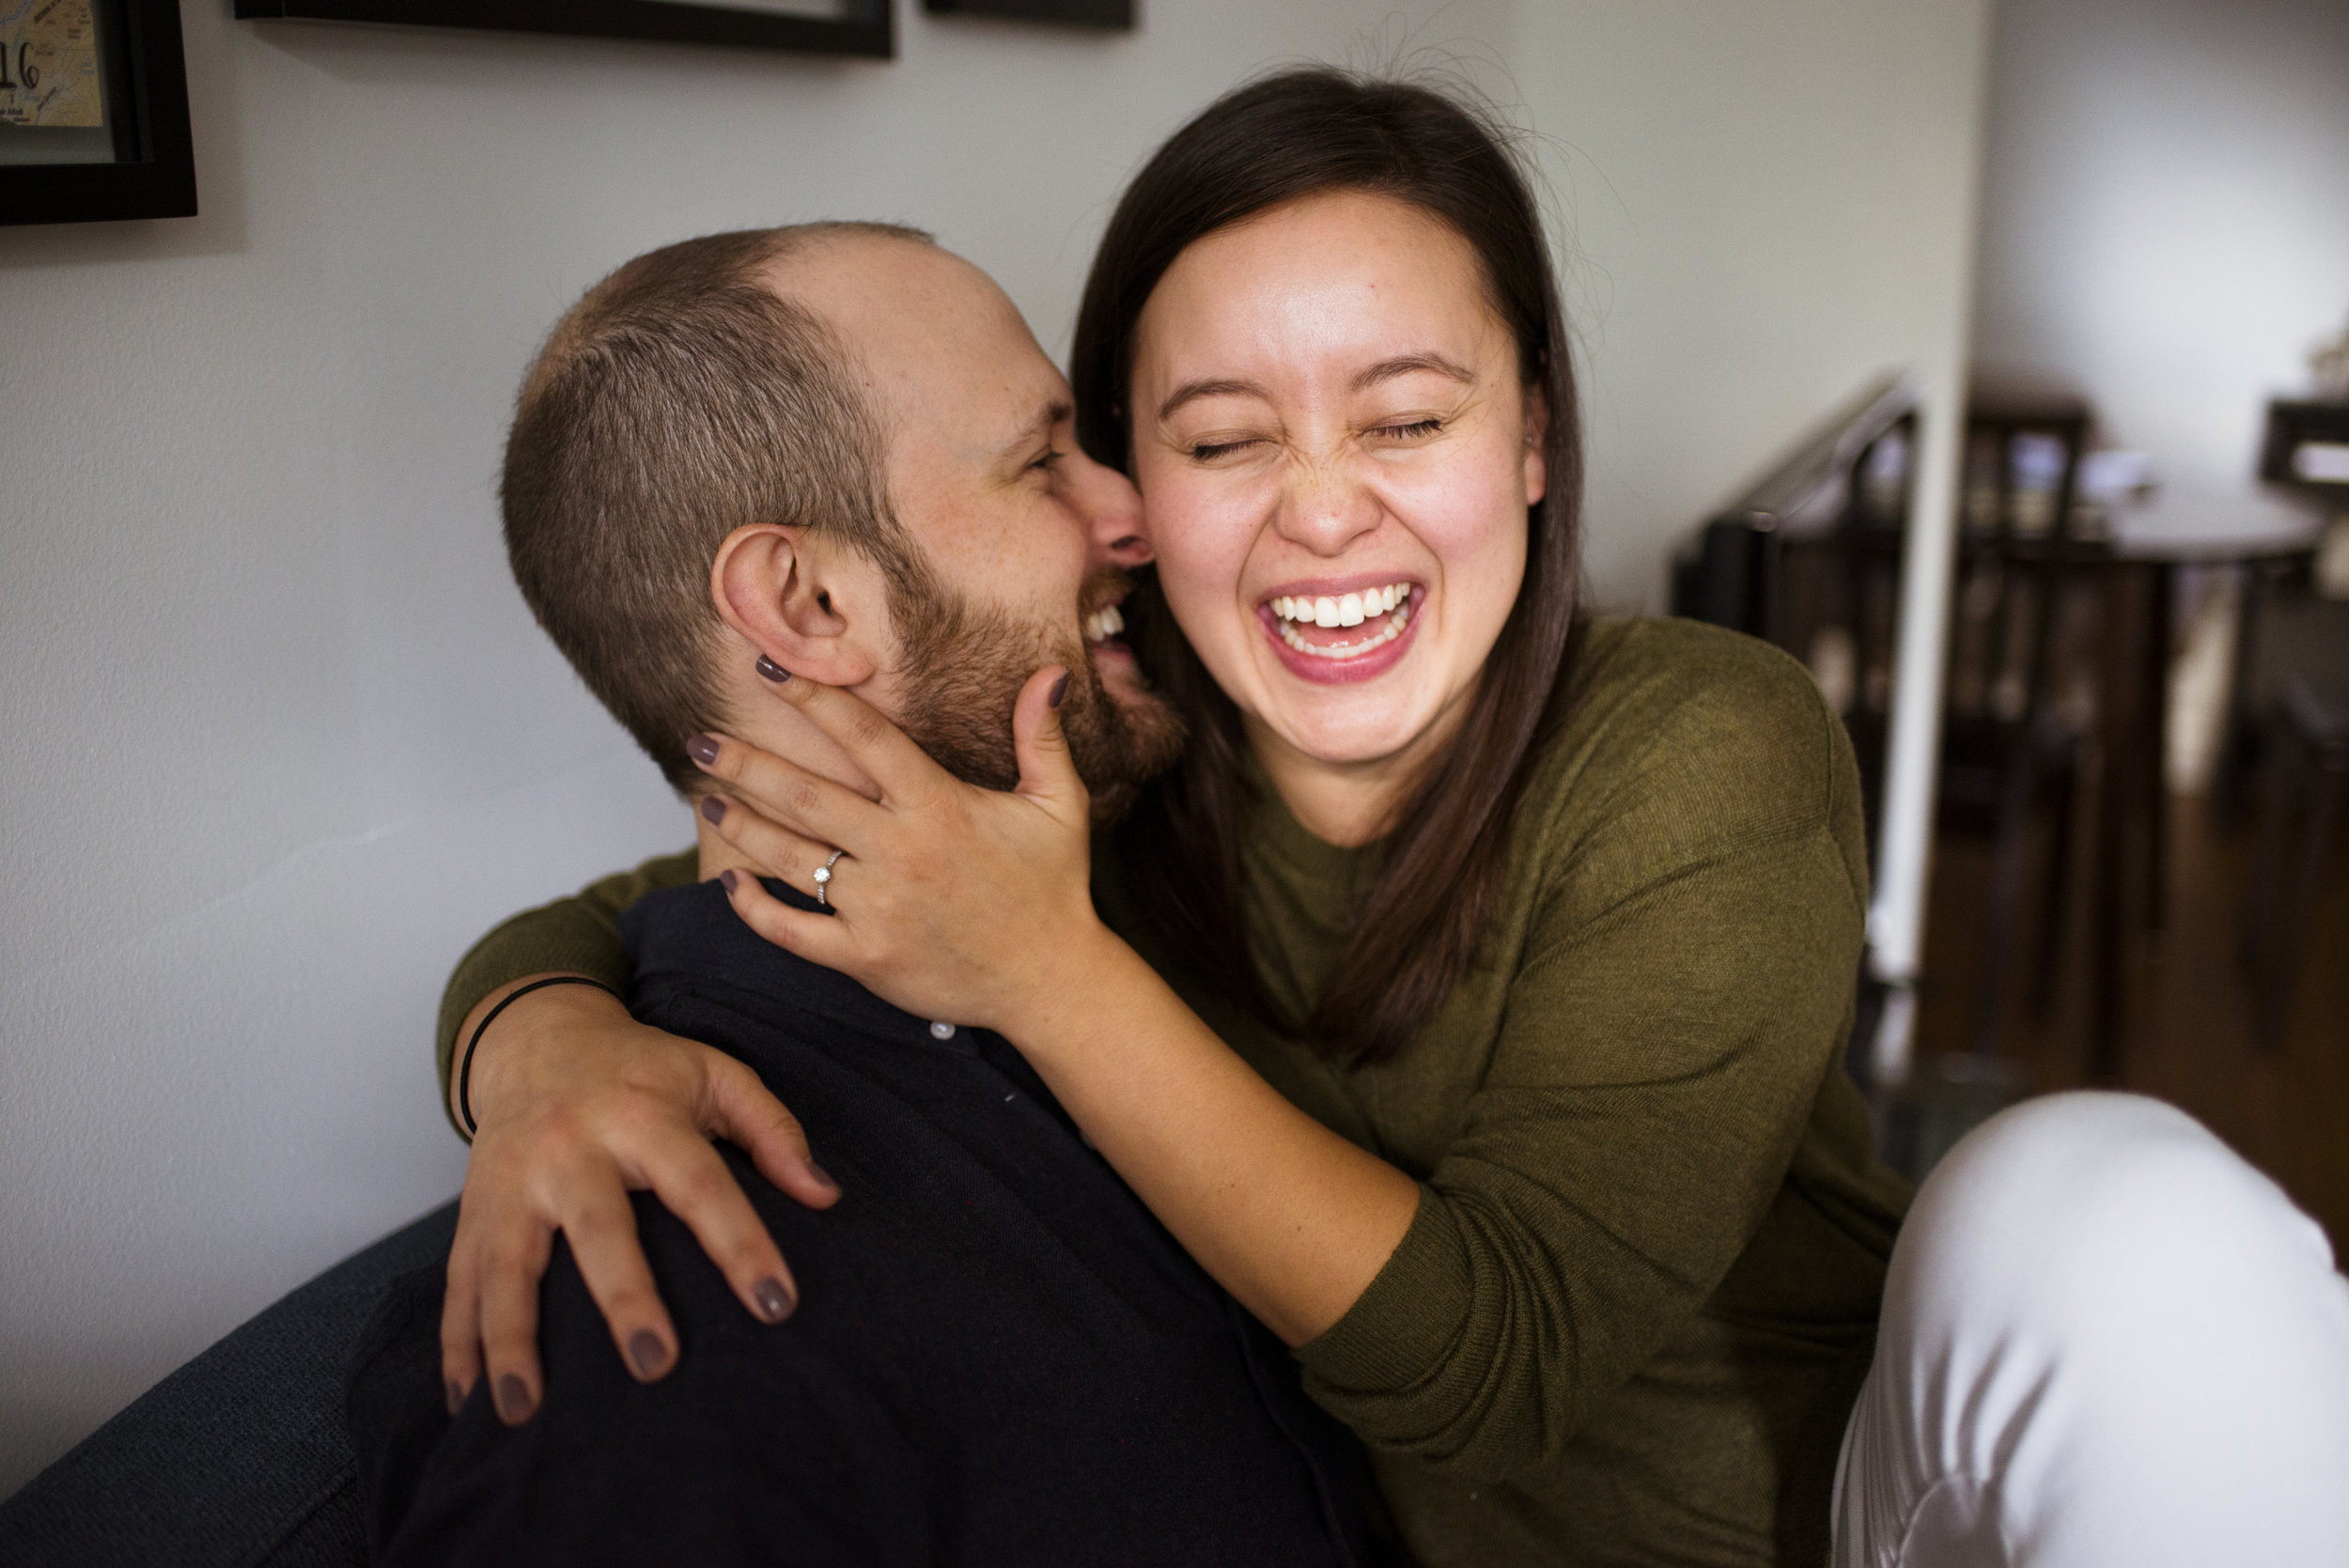 Toronto In-home engagement session